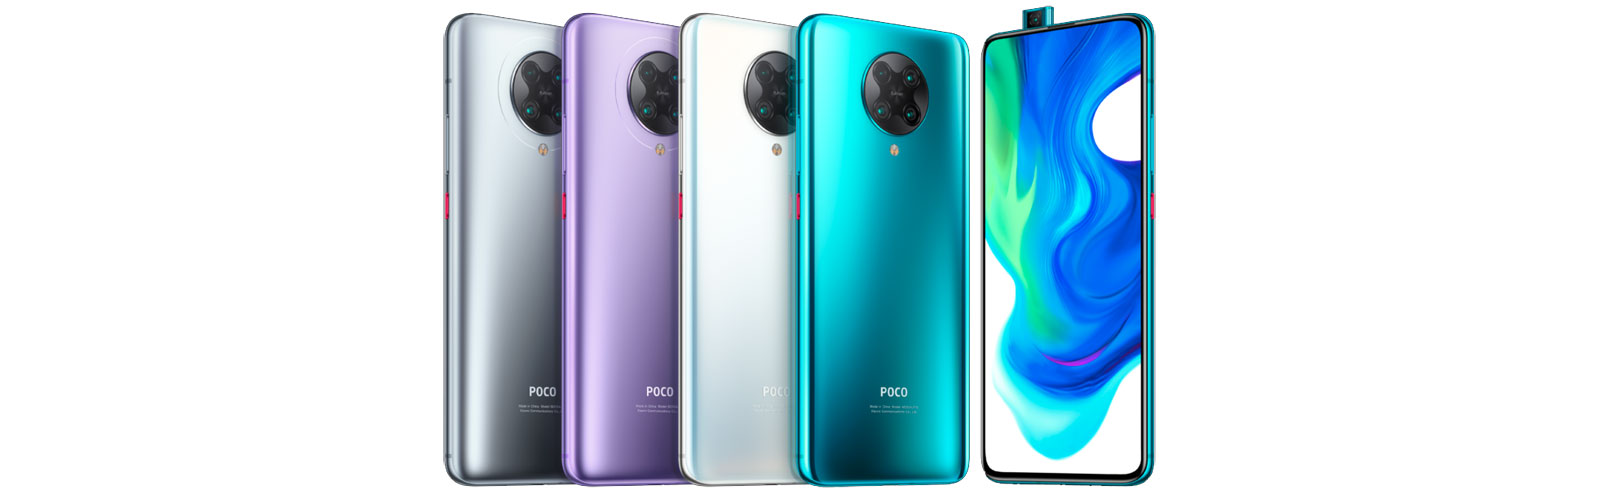 POCO F2 Pro is official - specifications and prices